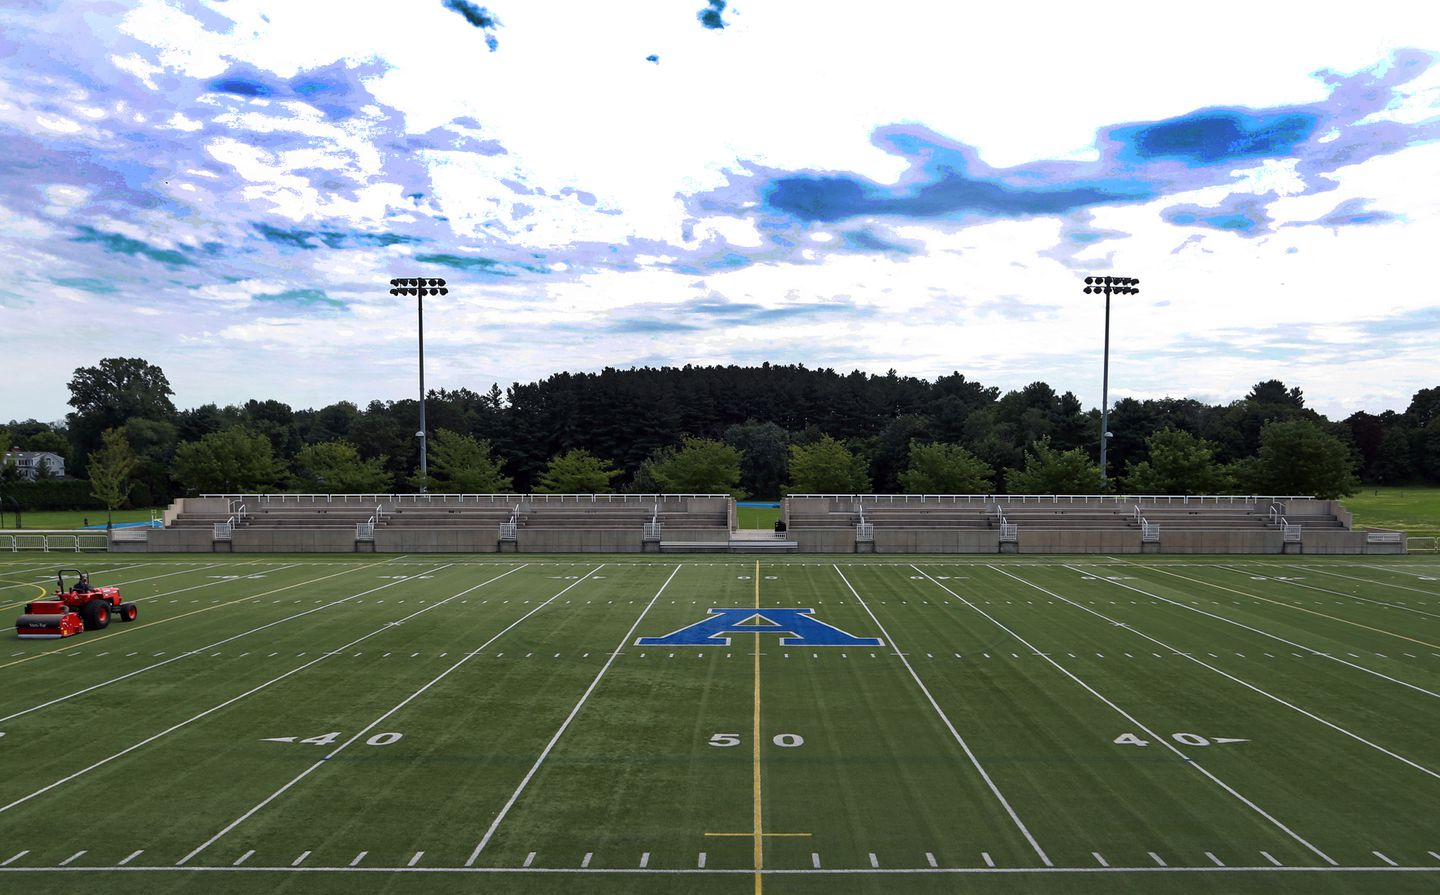 The football field at Phillips Academy.